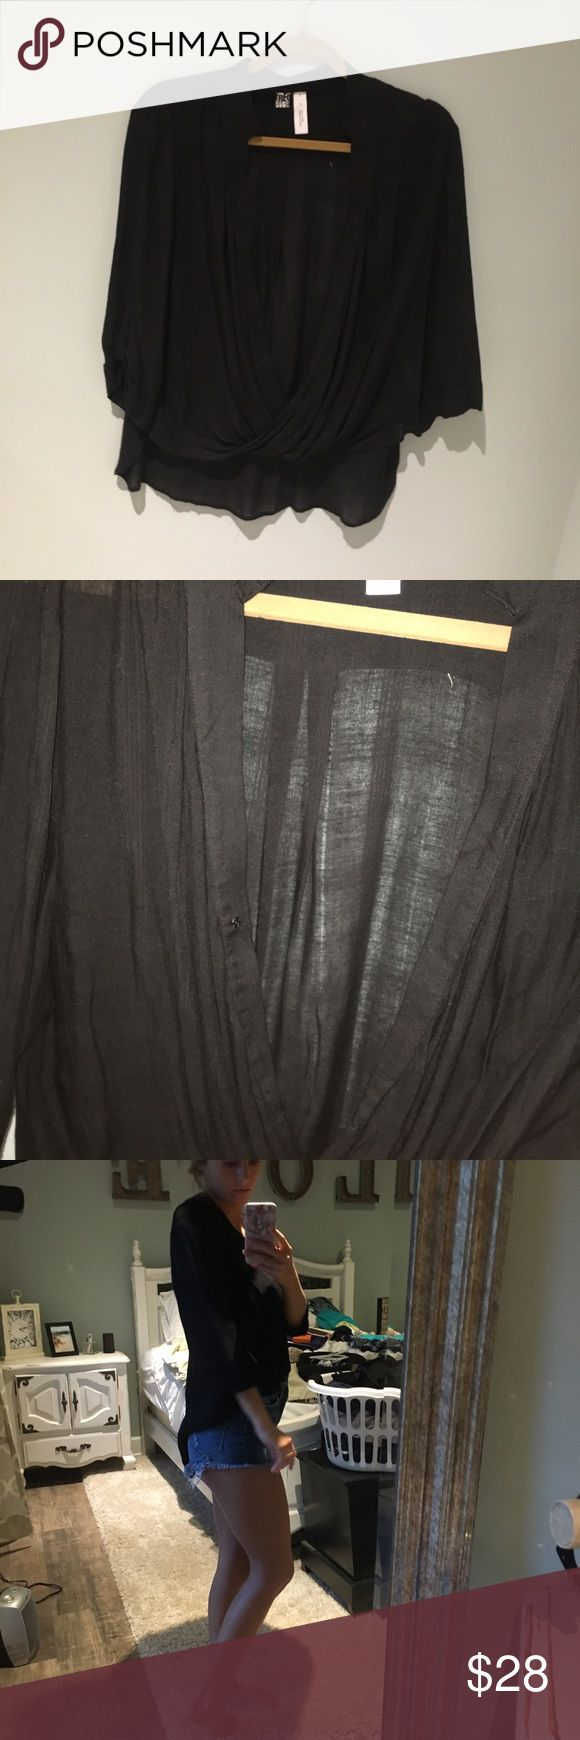 Black linen float top Perfect condition & outfit maker!! Gotta have this basic in your closet! Offer up. Fits small/large Tops Blouses